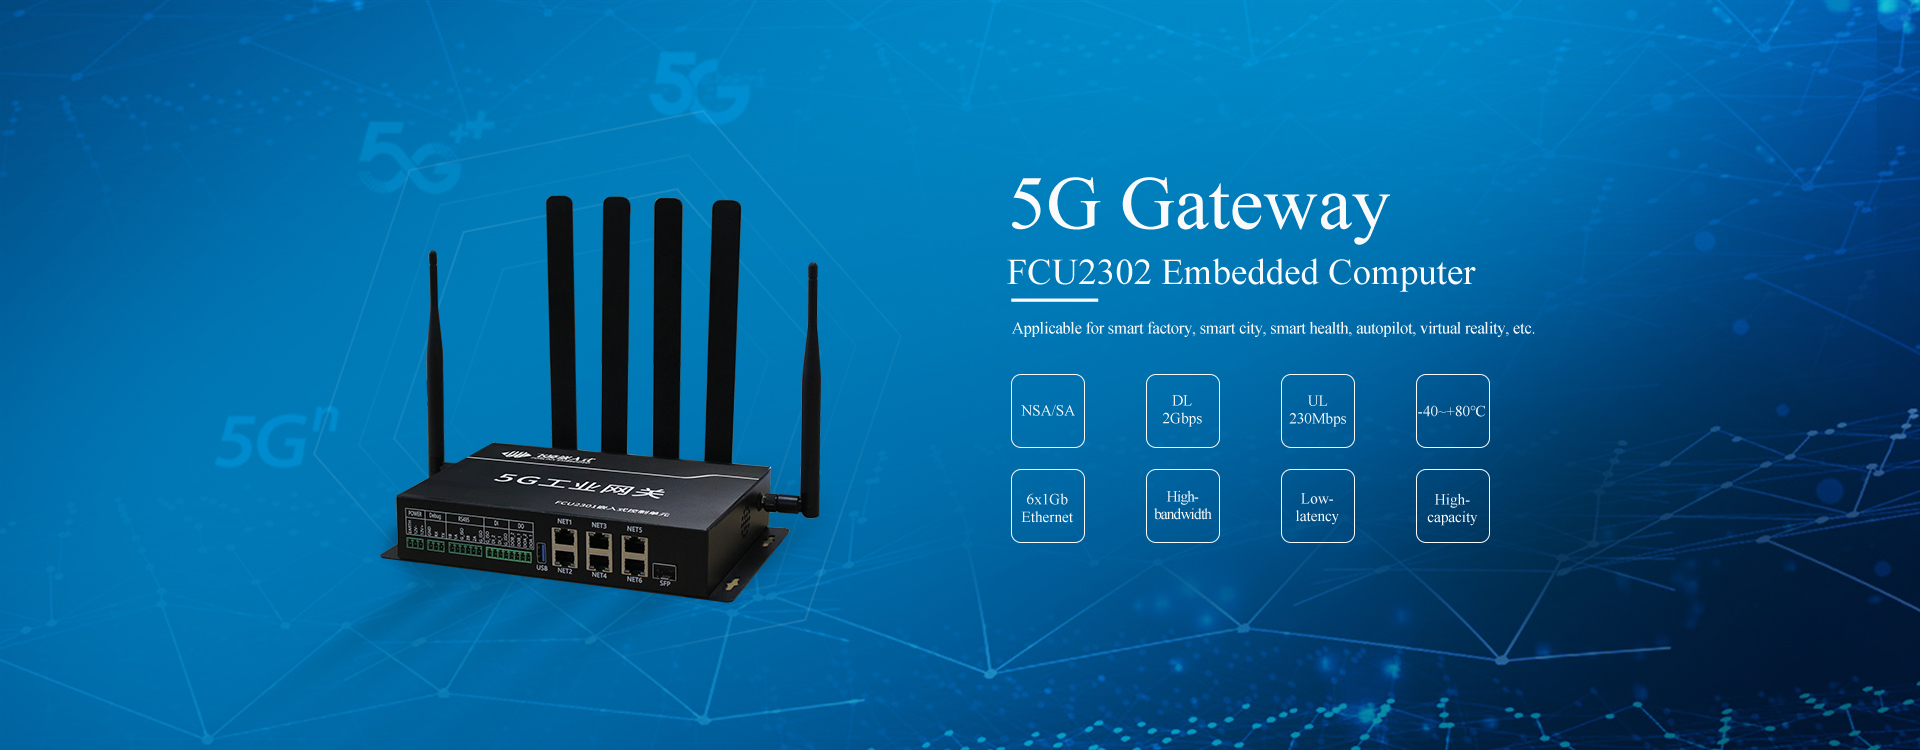 LS1043A, LS1046A SoC based 5G gateway can support Huawei MH5